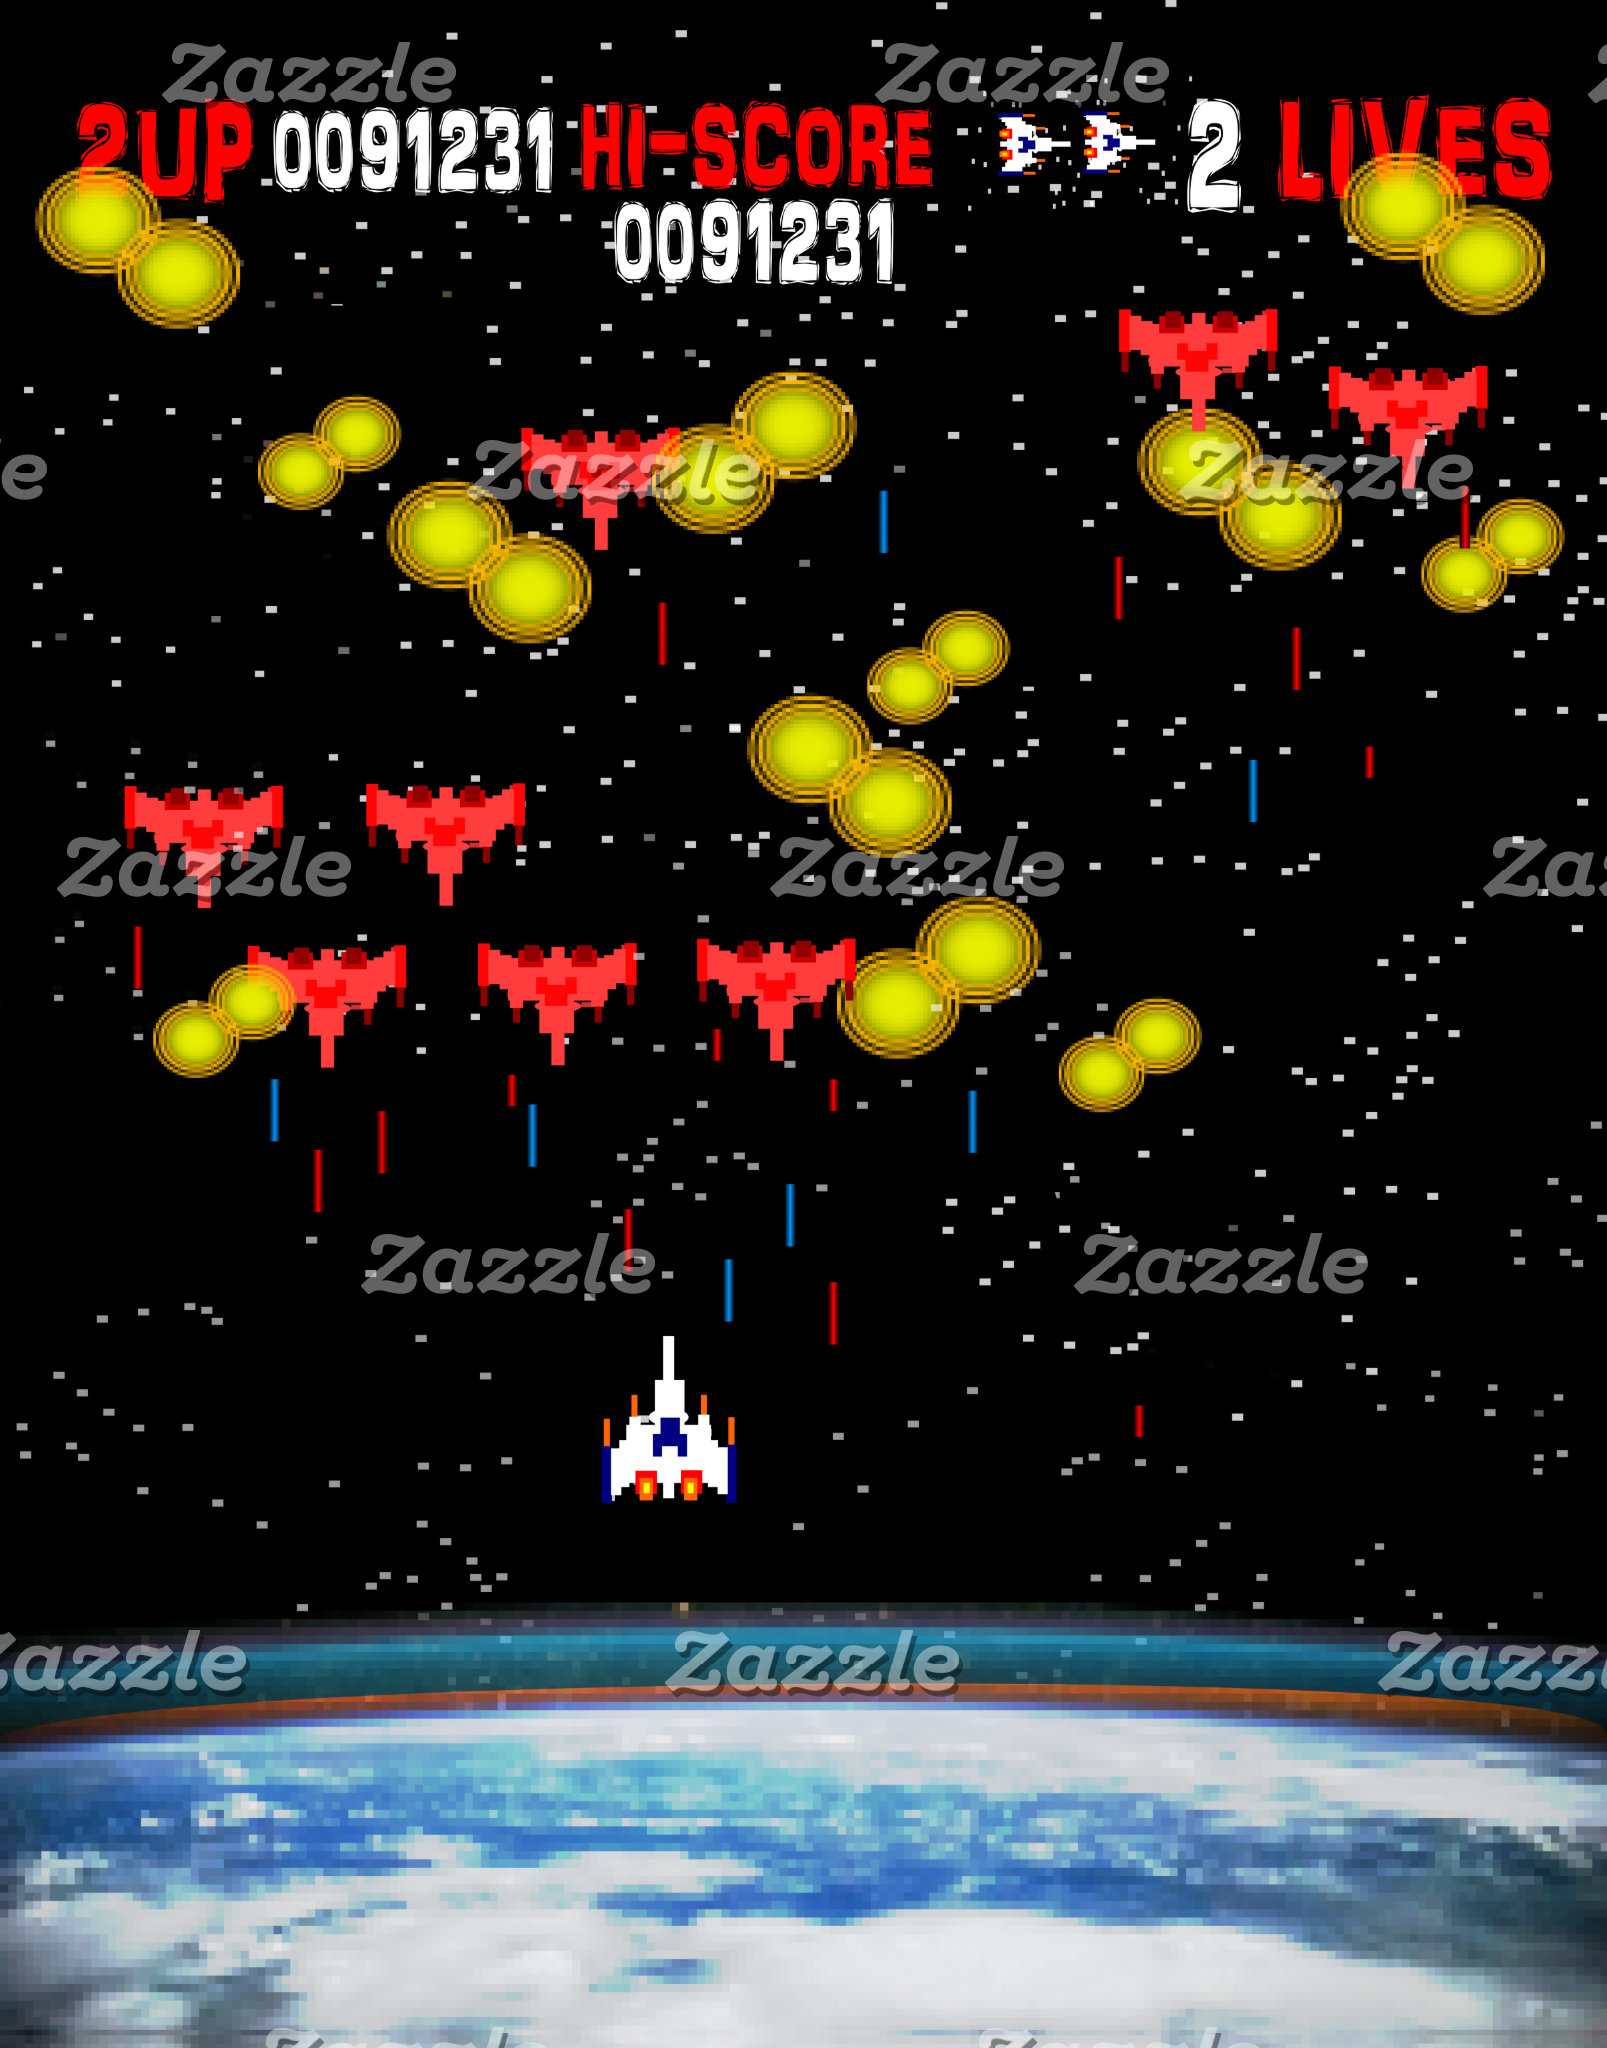 Retro 80s Style Earth and Space Fight Video Game